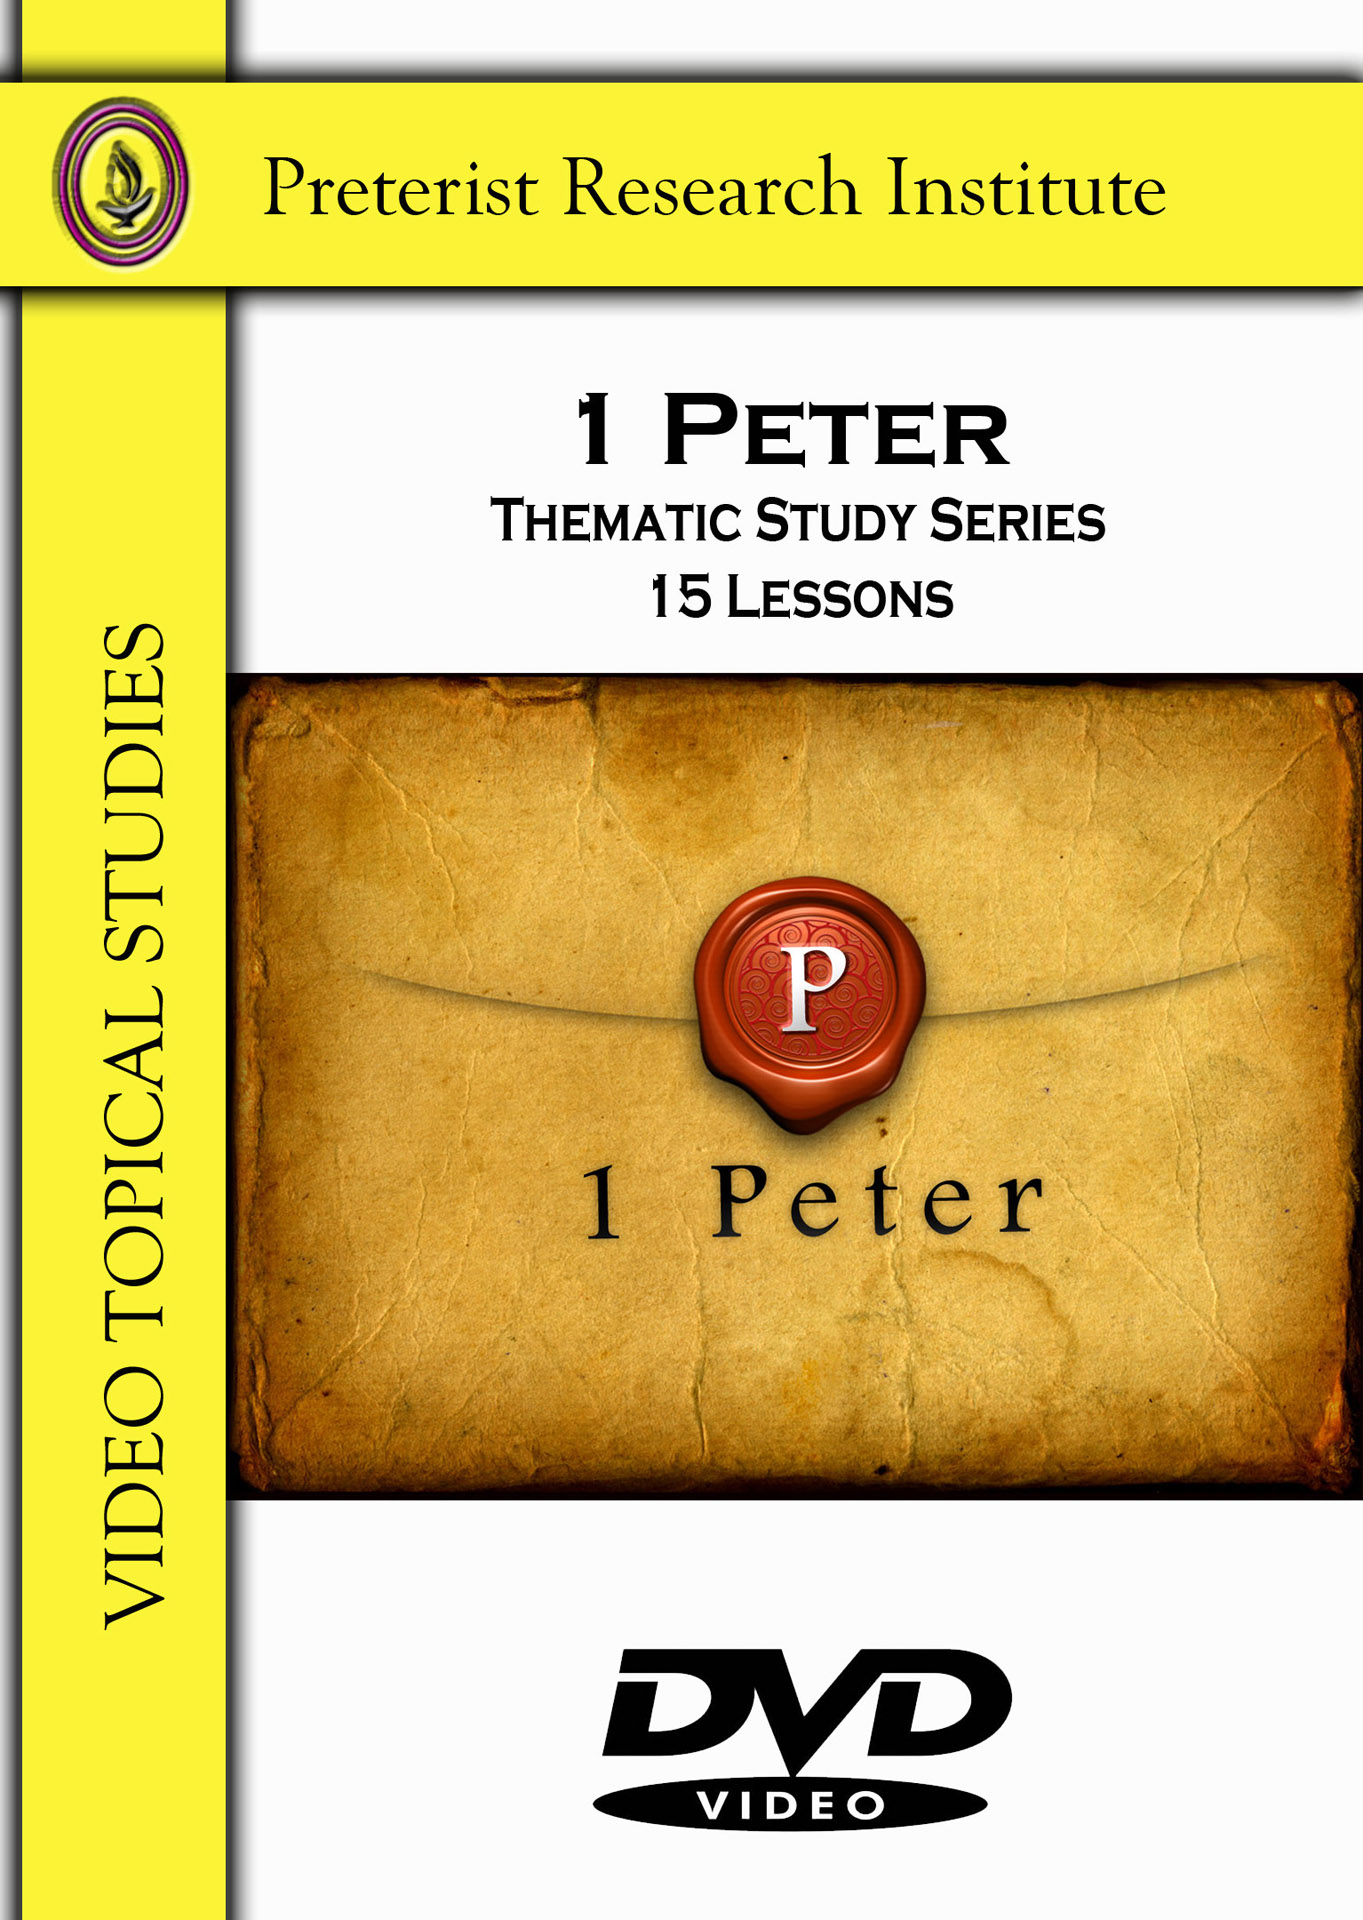 Thematic Study of 1 Peter